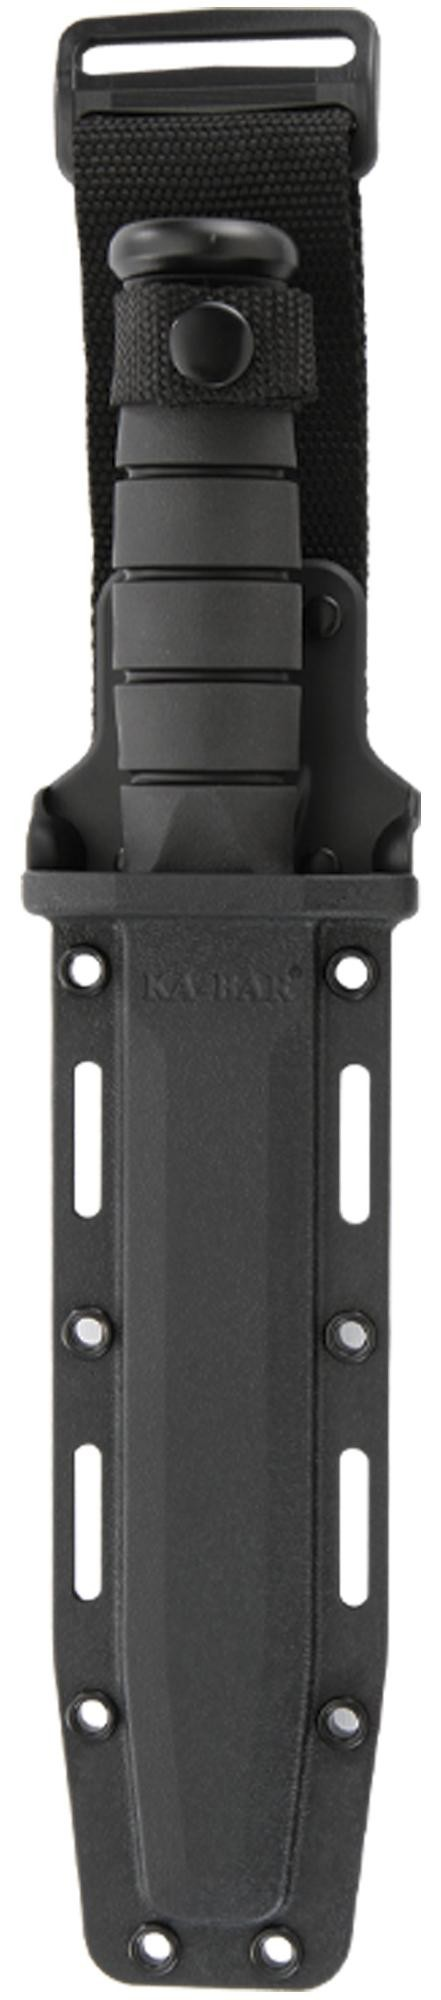 KA-BAR® Full Size with Hard Plastic Sheath (5017)